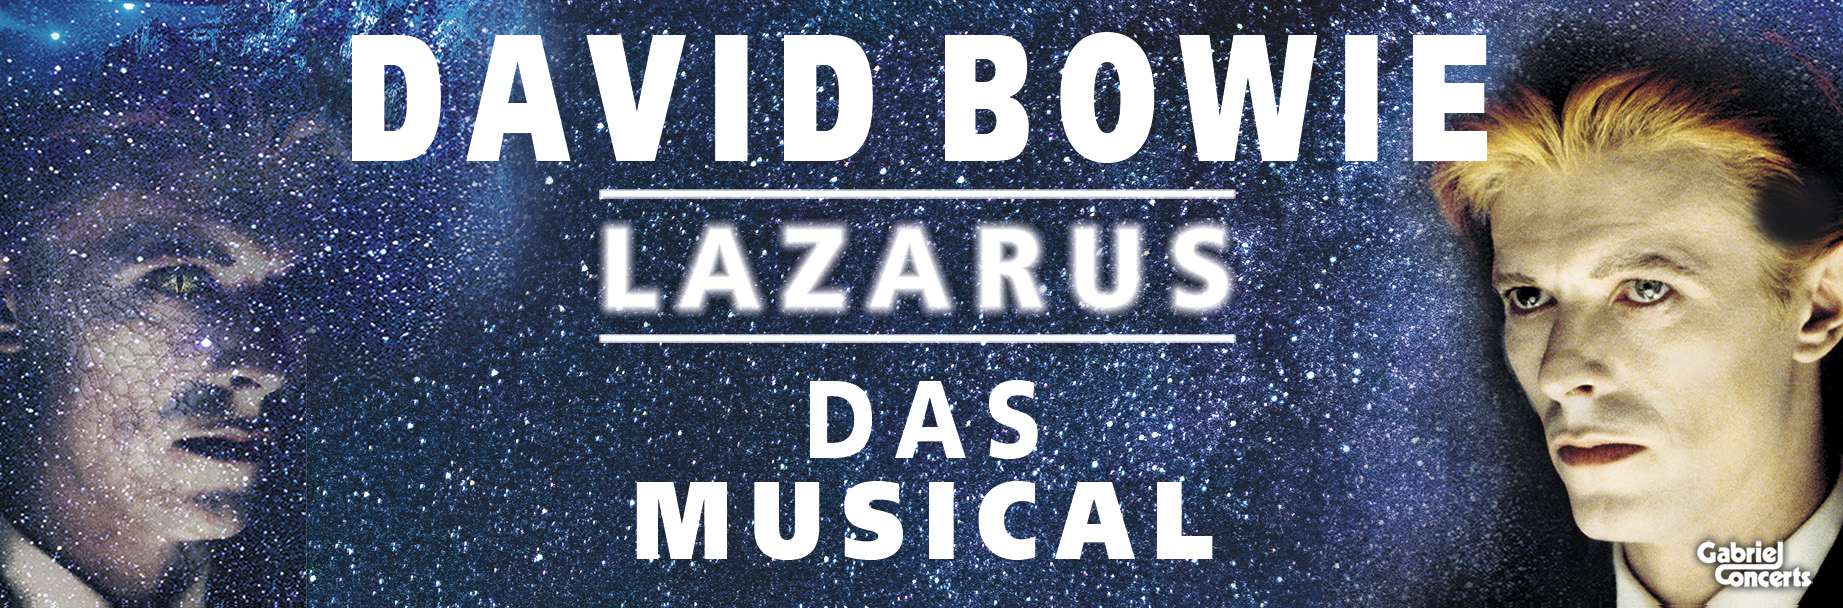 David Bowie - Lazarus - Das Musical